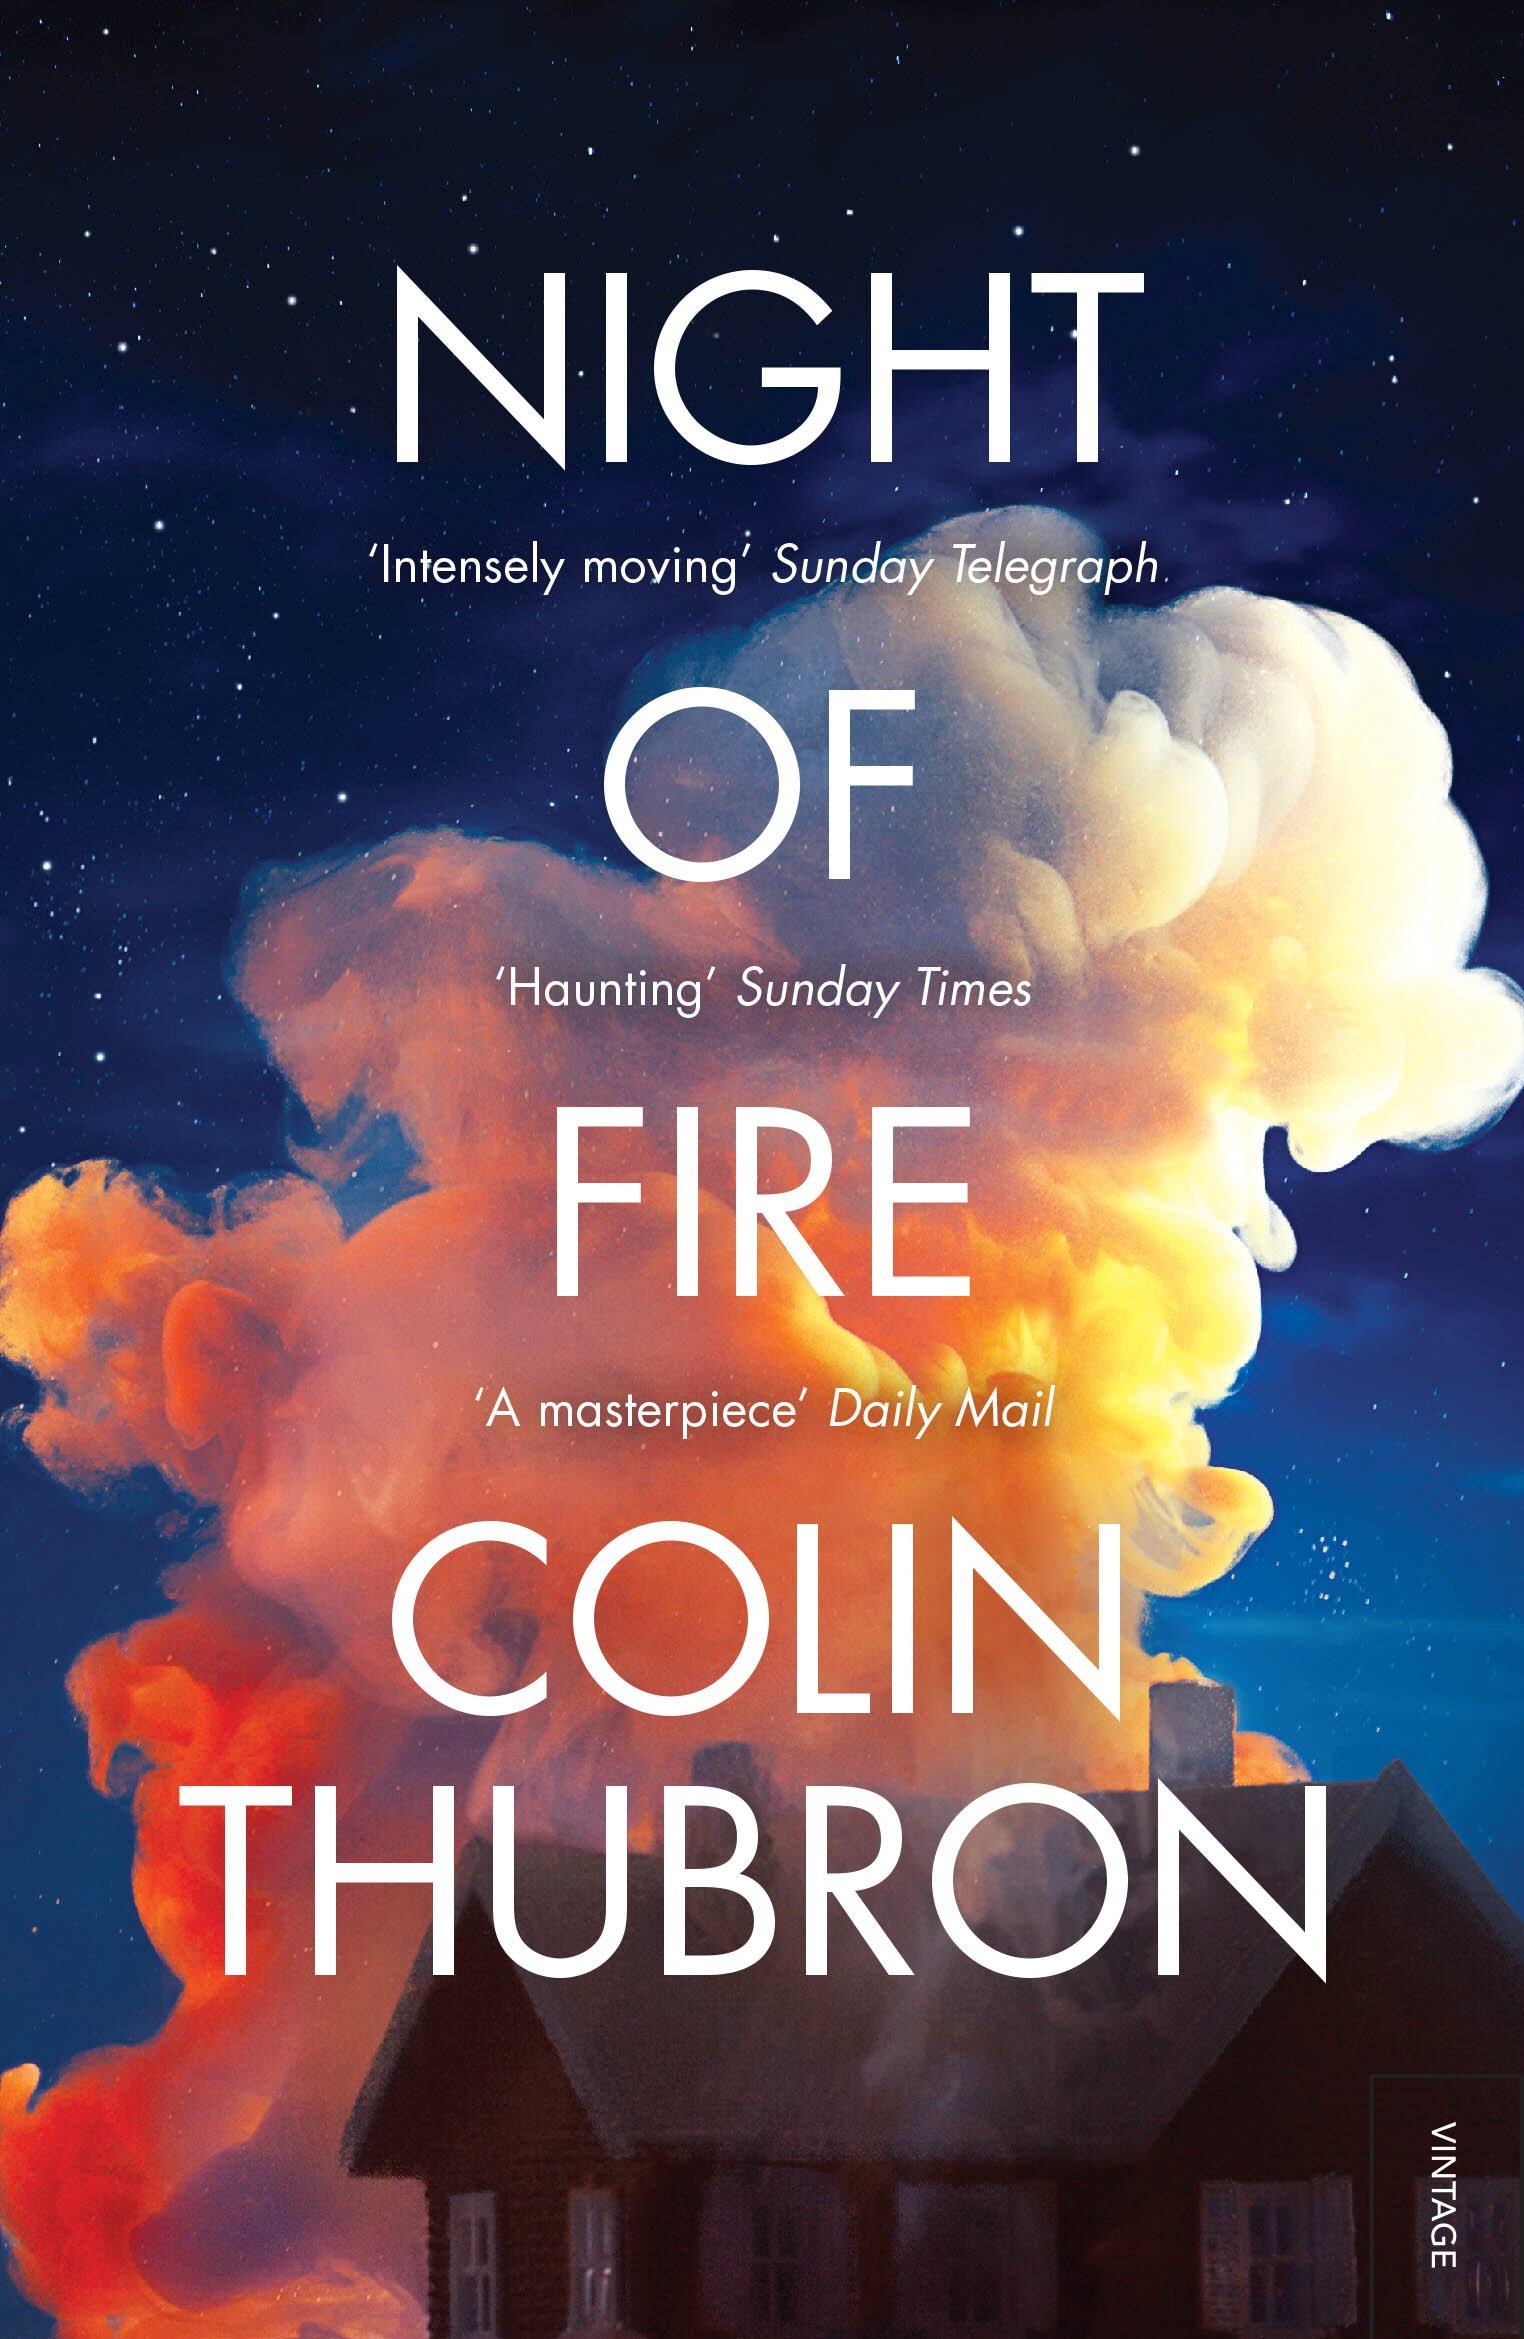 Cover of assets/book-covers/night-of-fire.jpg by Colin Thubron